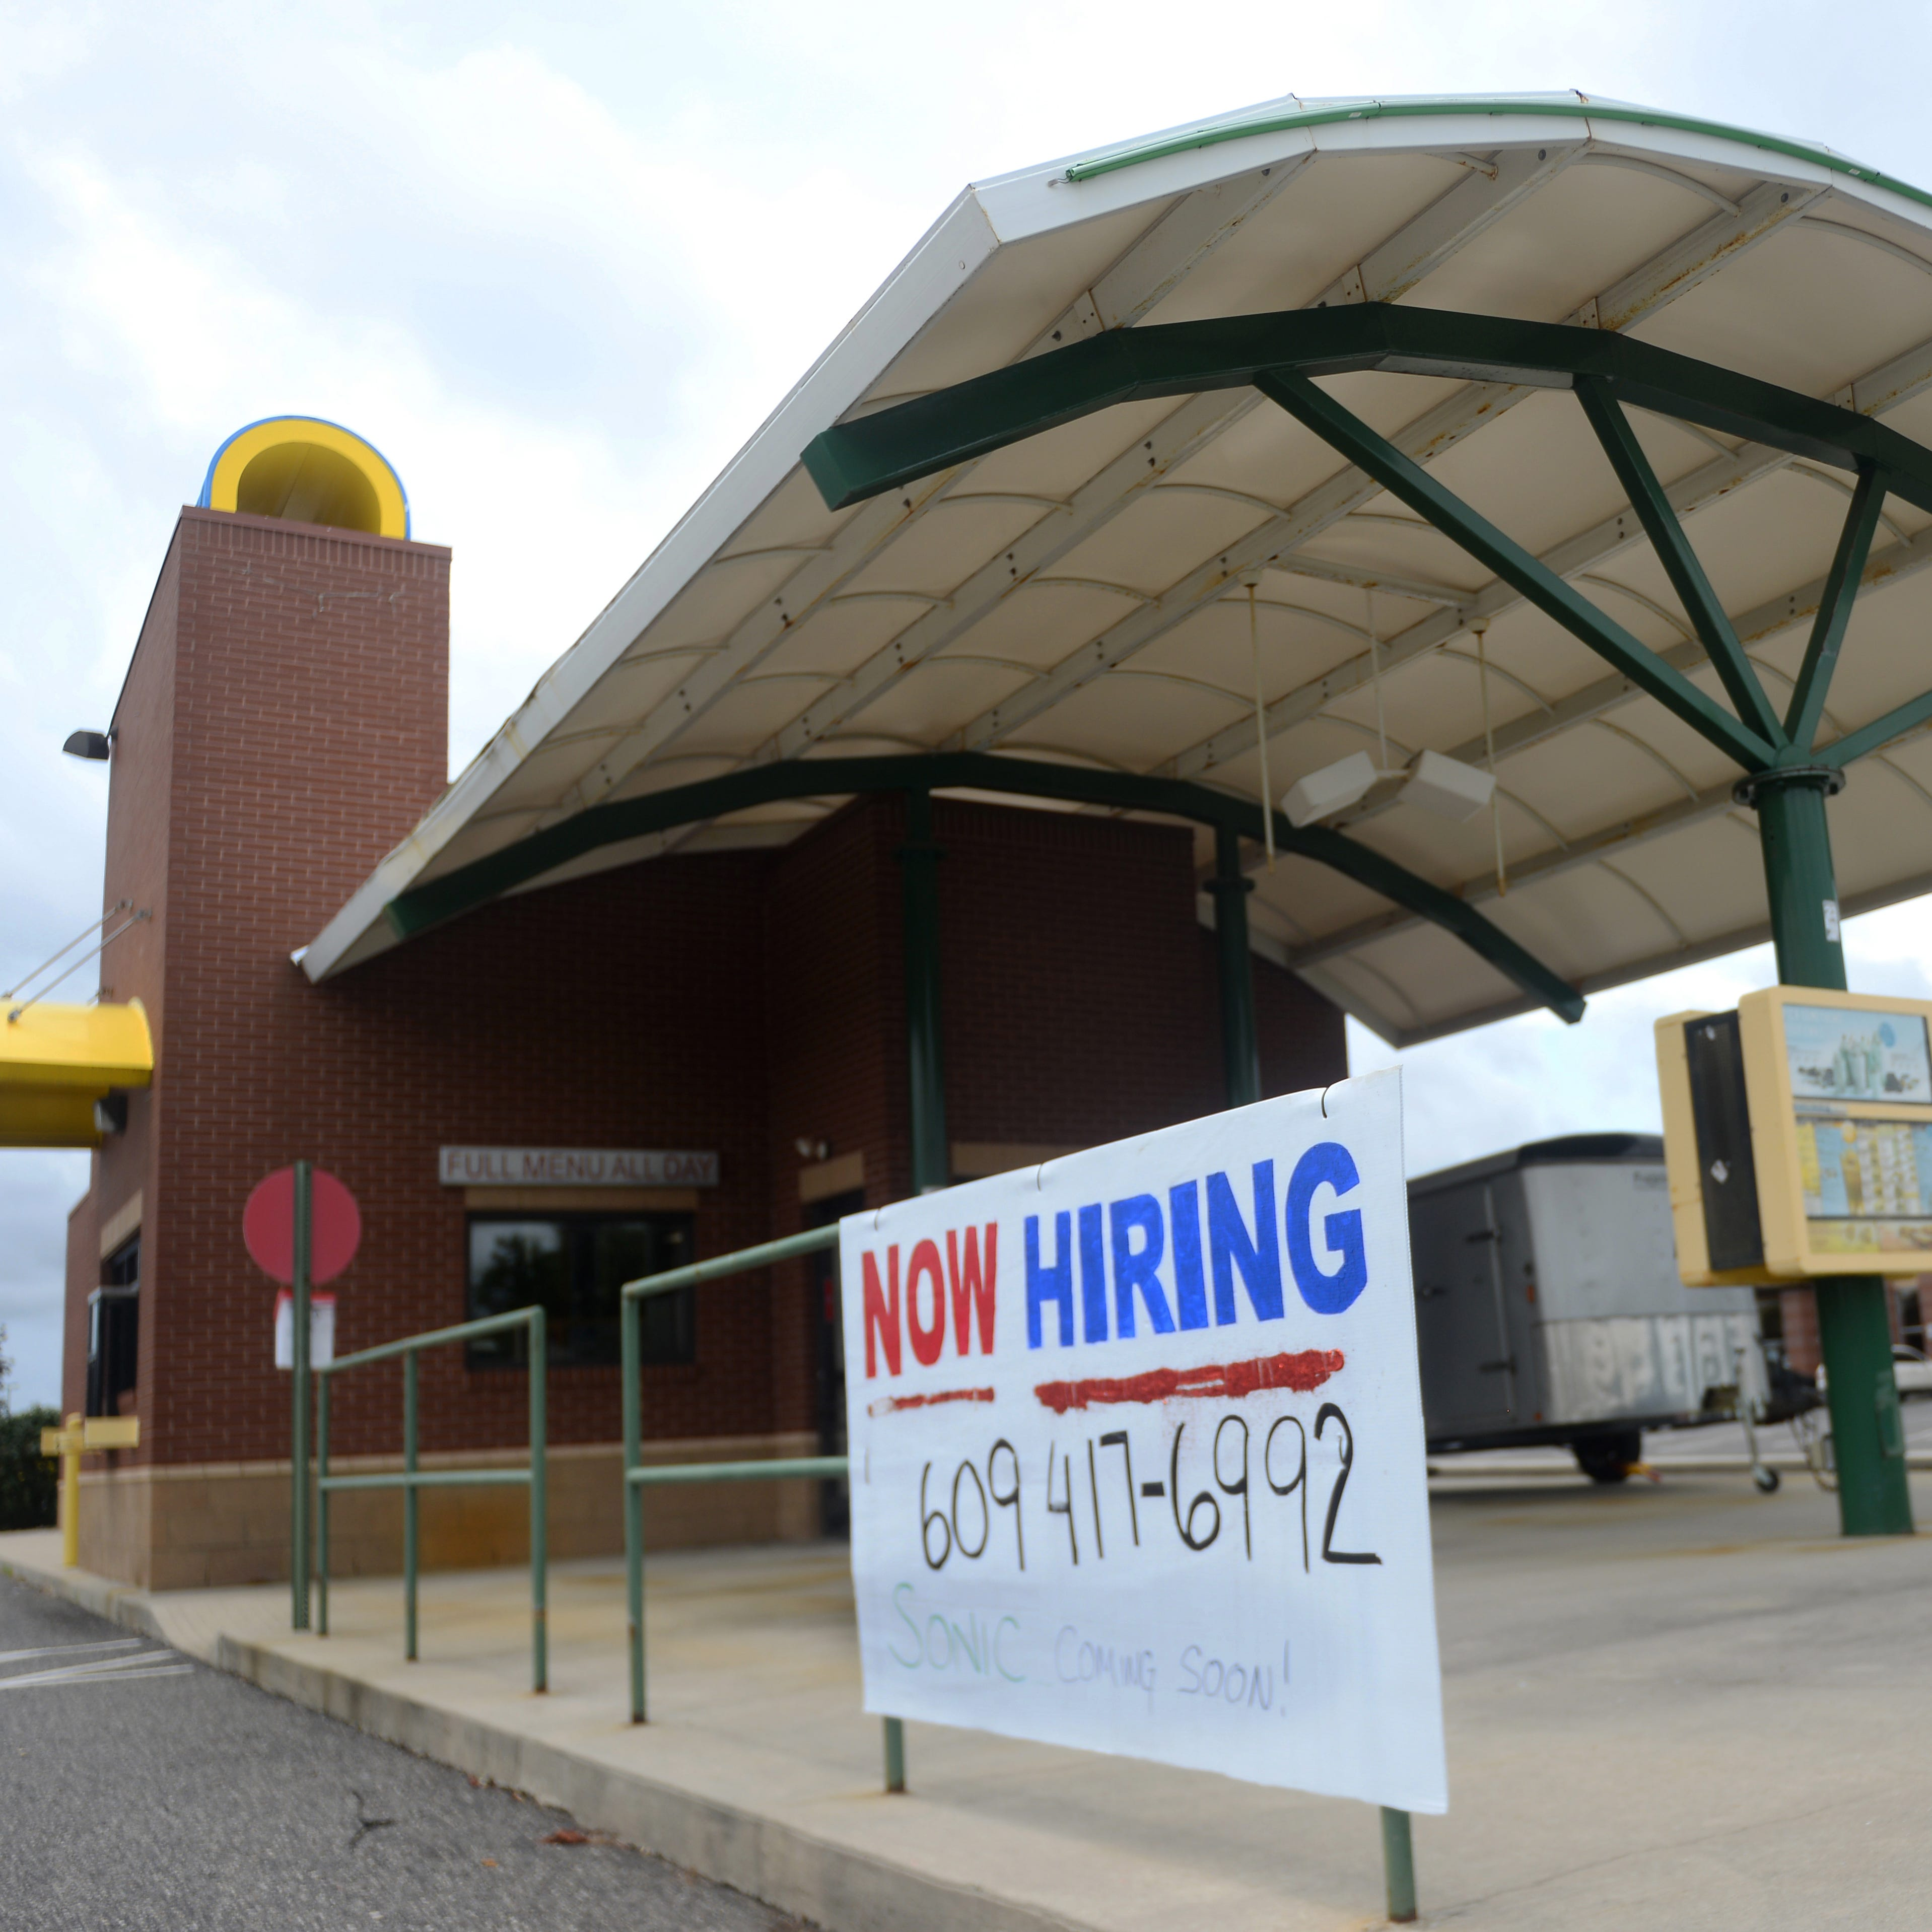 Millville Sonic Drive-In to get second chance with new owners